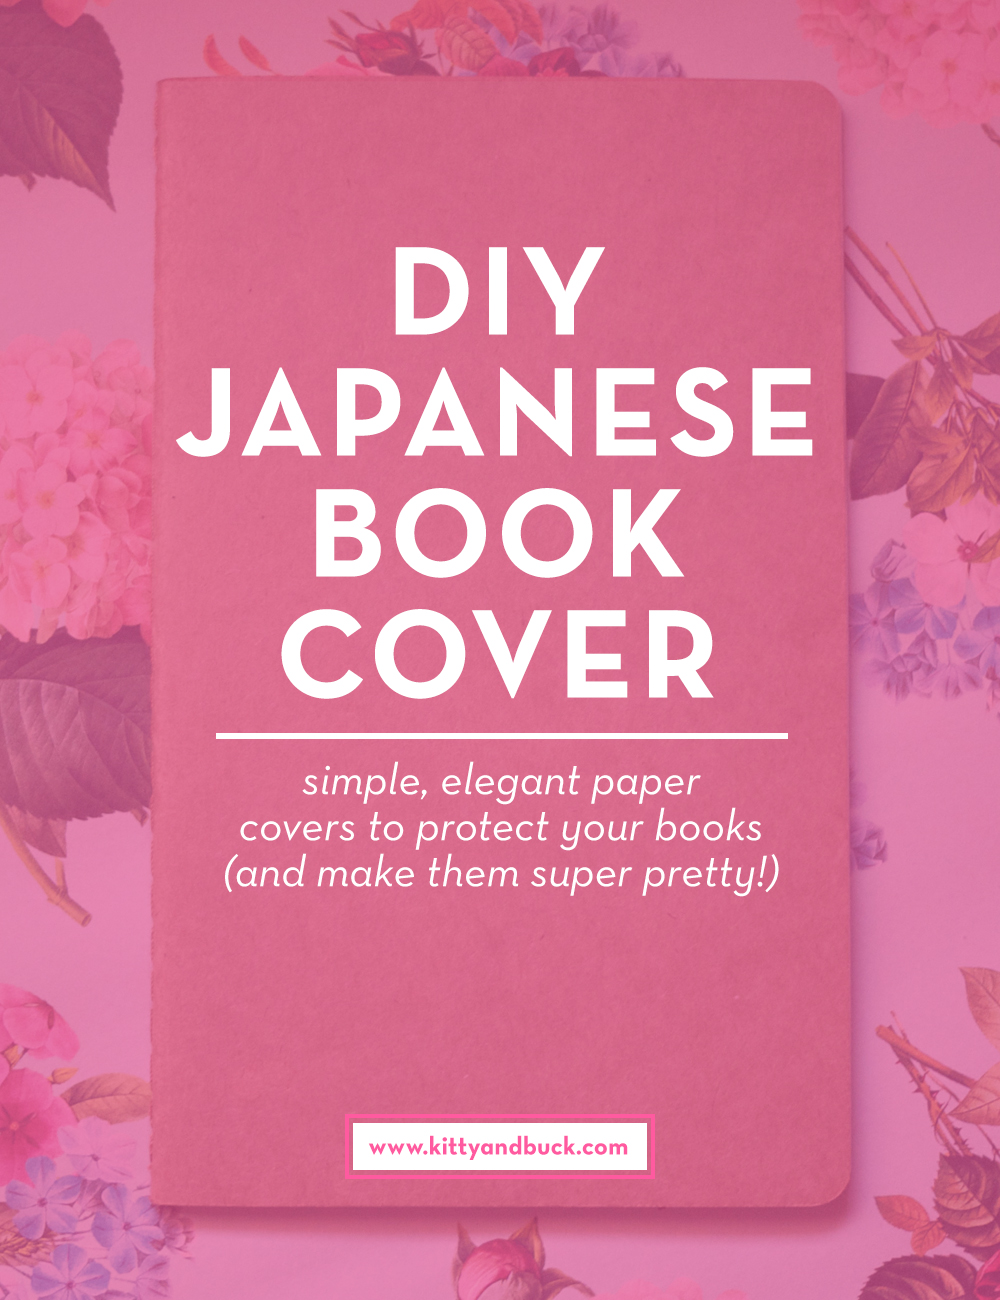 Paper Book Cover Directions ~ Diy japanese paper book cover — kitty buck